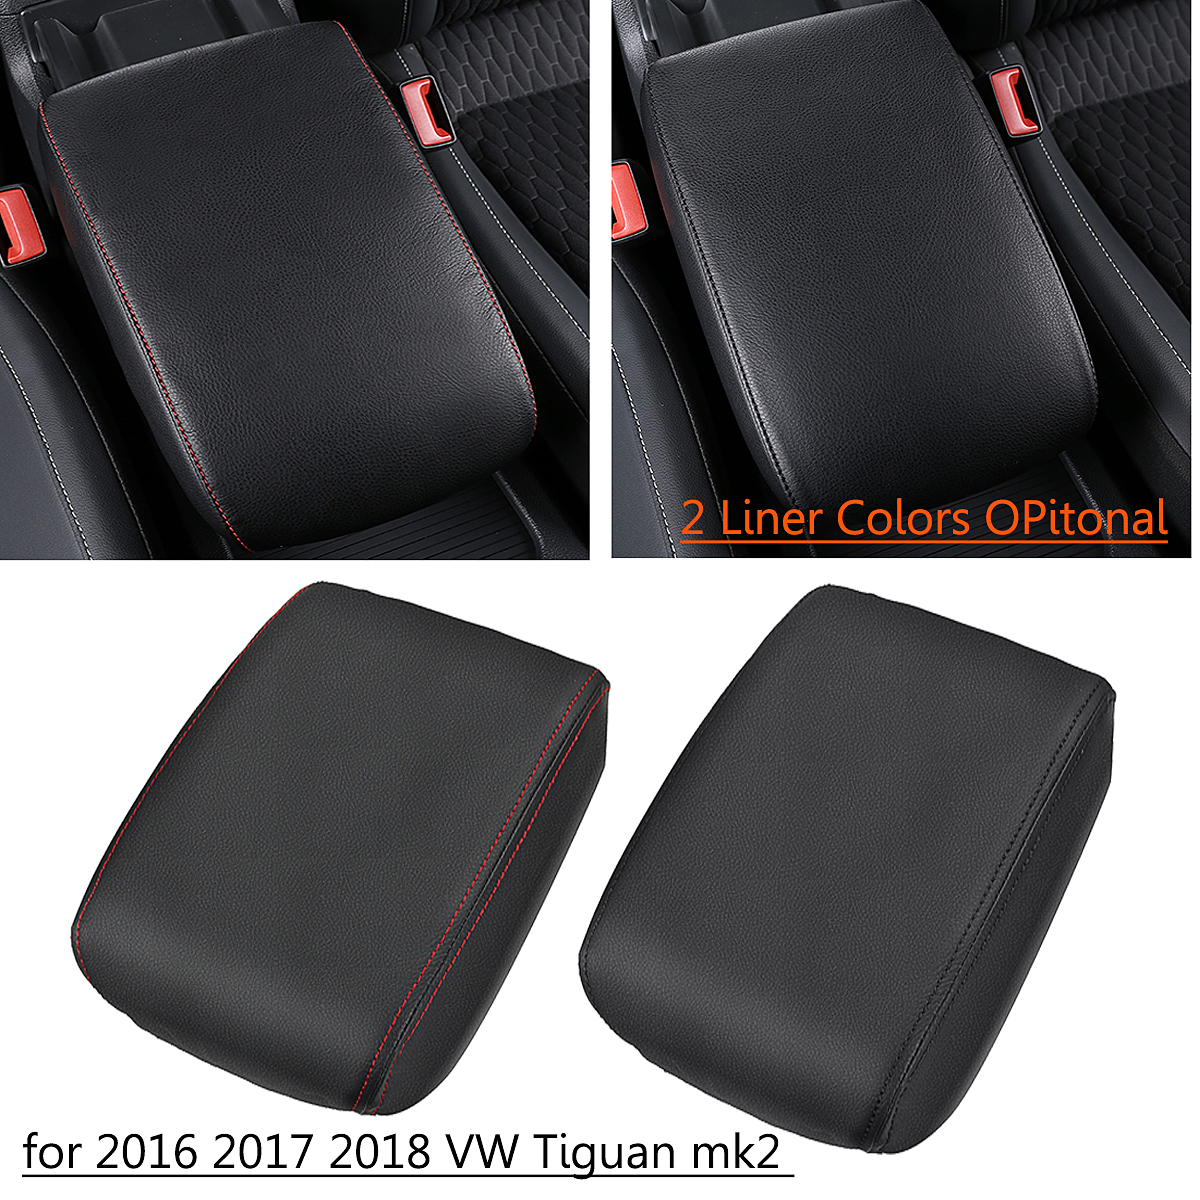 Car Center Console Seat Armrest Box Pads Cover PU Leather for Volkswagen VW Tiguan MK2 2016 2017 2018 Car Styling Accessories